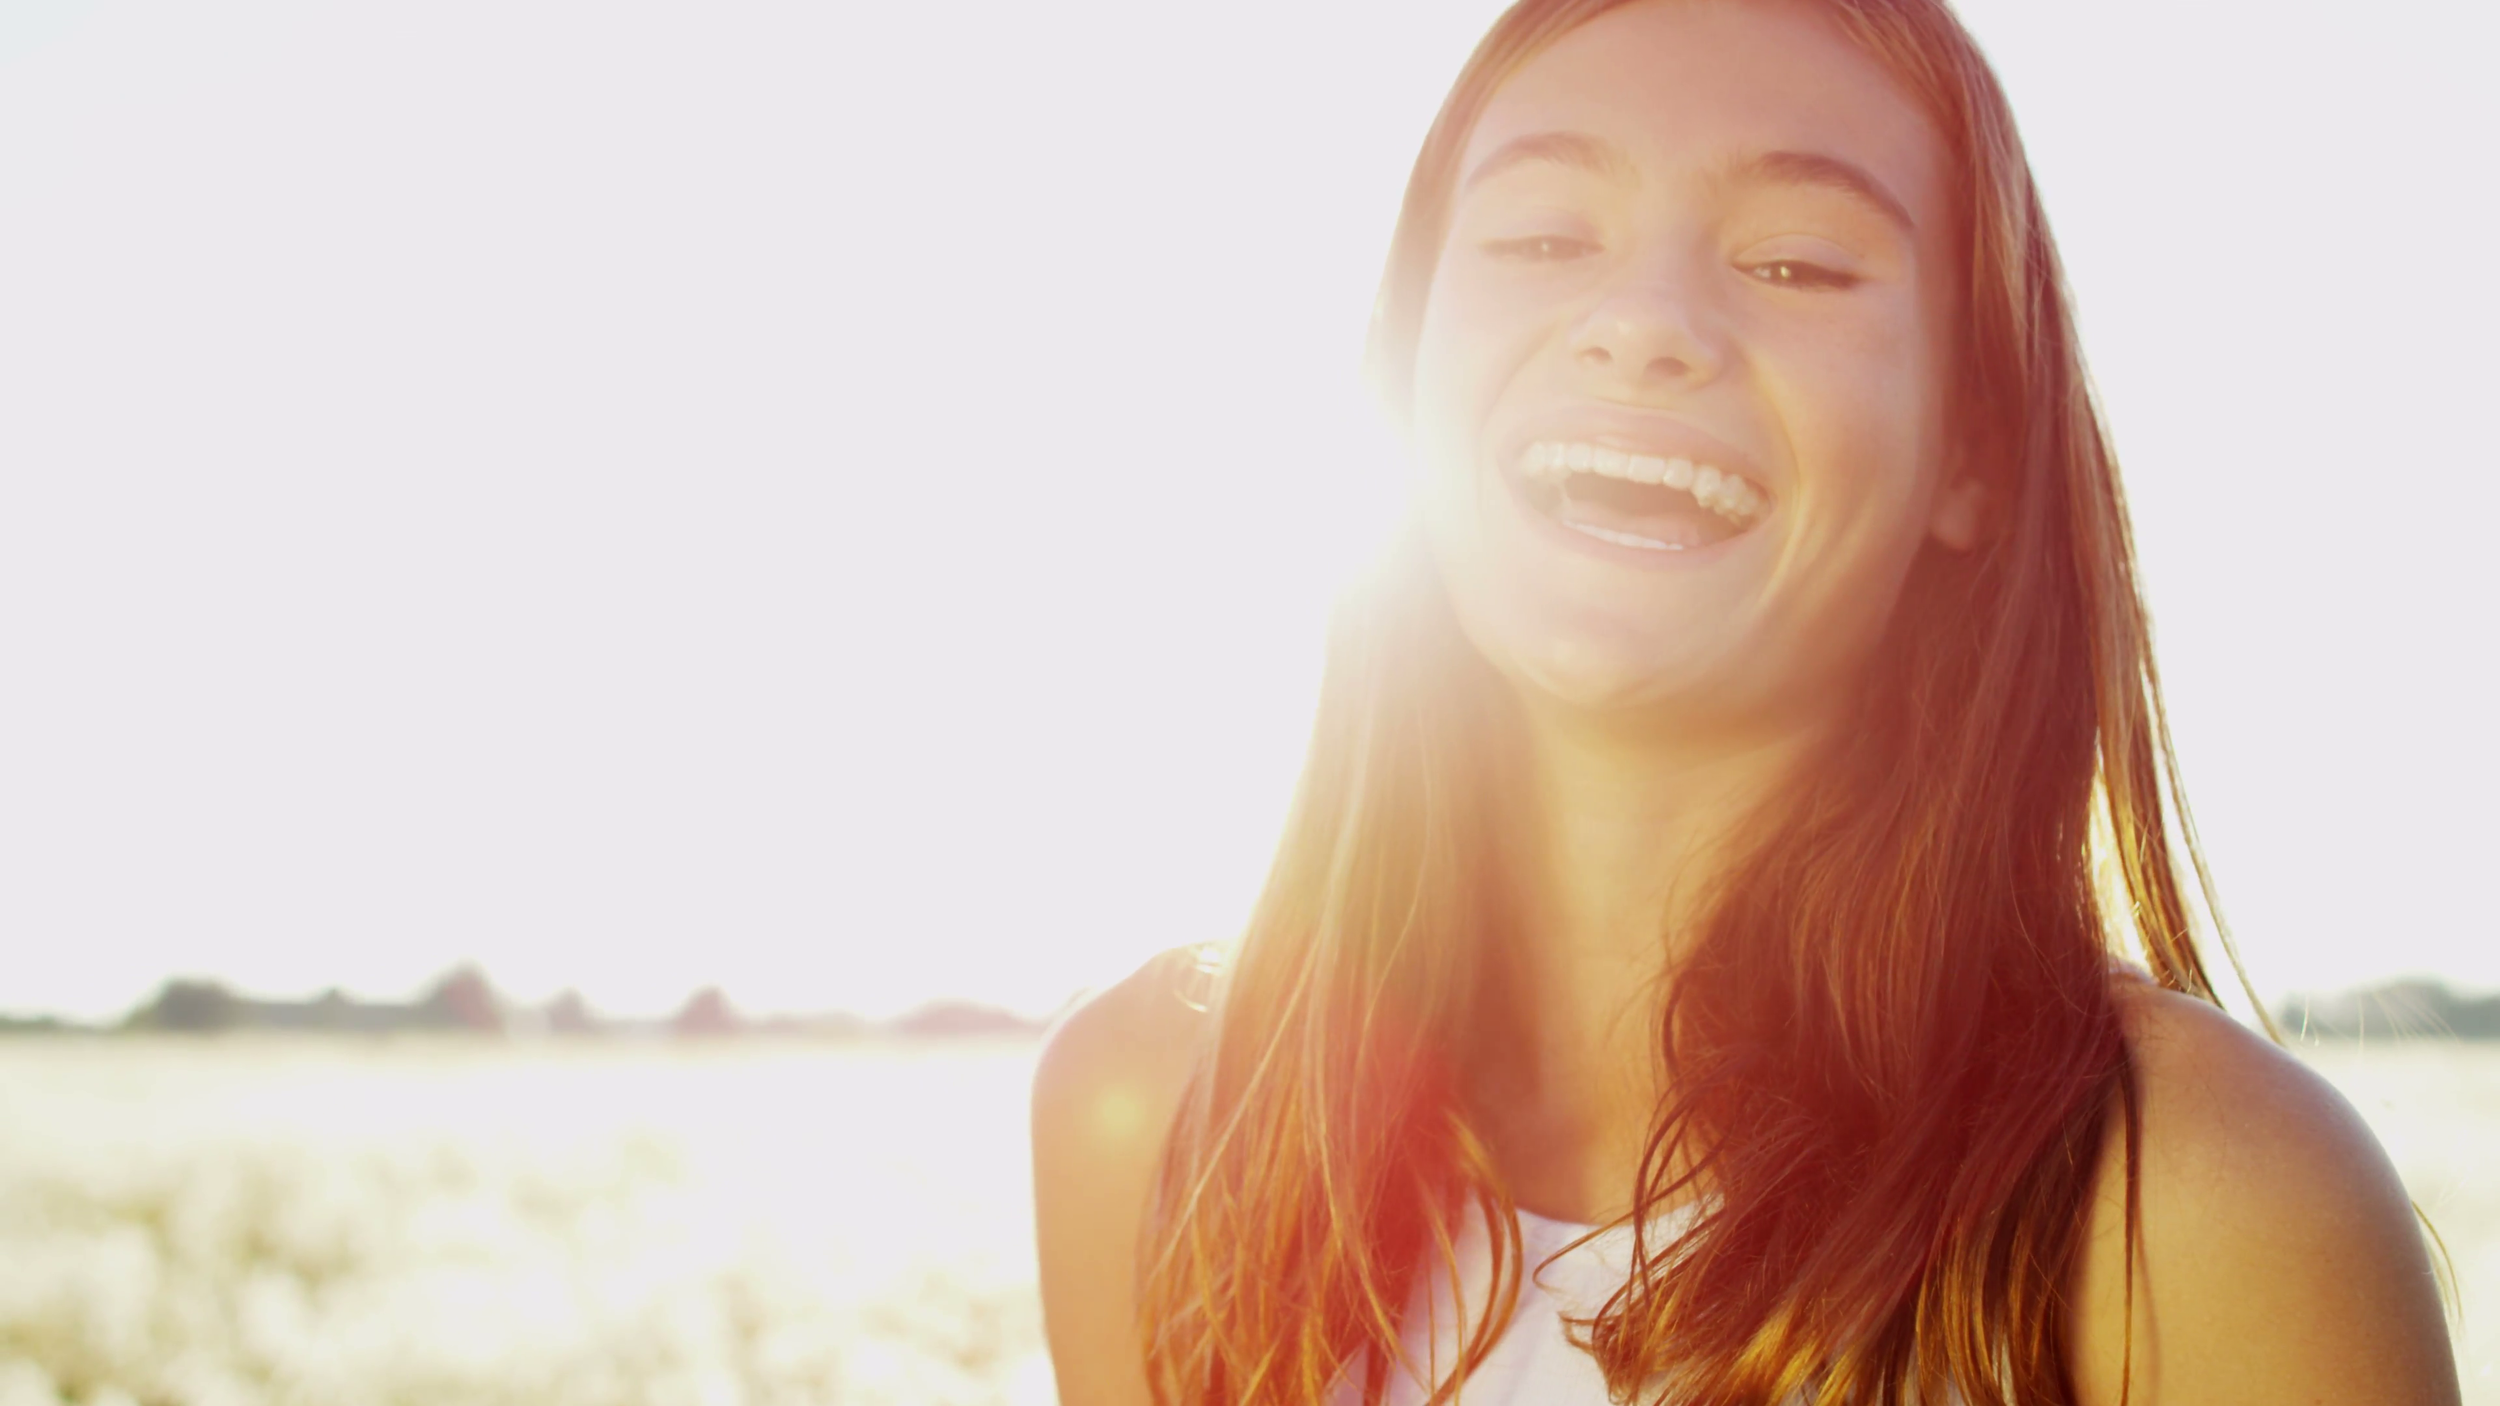 portrait-happy-smiling-young-pretty-girl-outdoors-summer-sunshine-sun-flare_ejxtgist__F0000.png